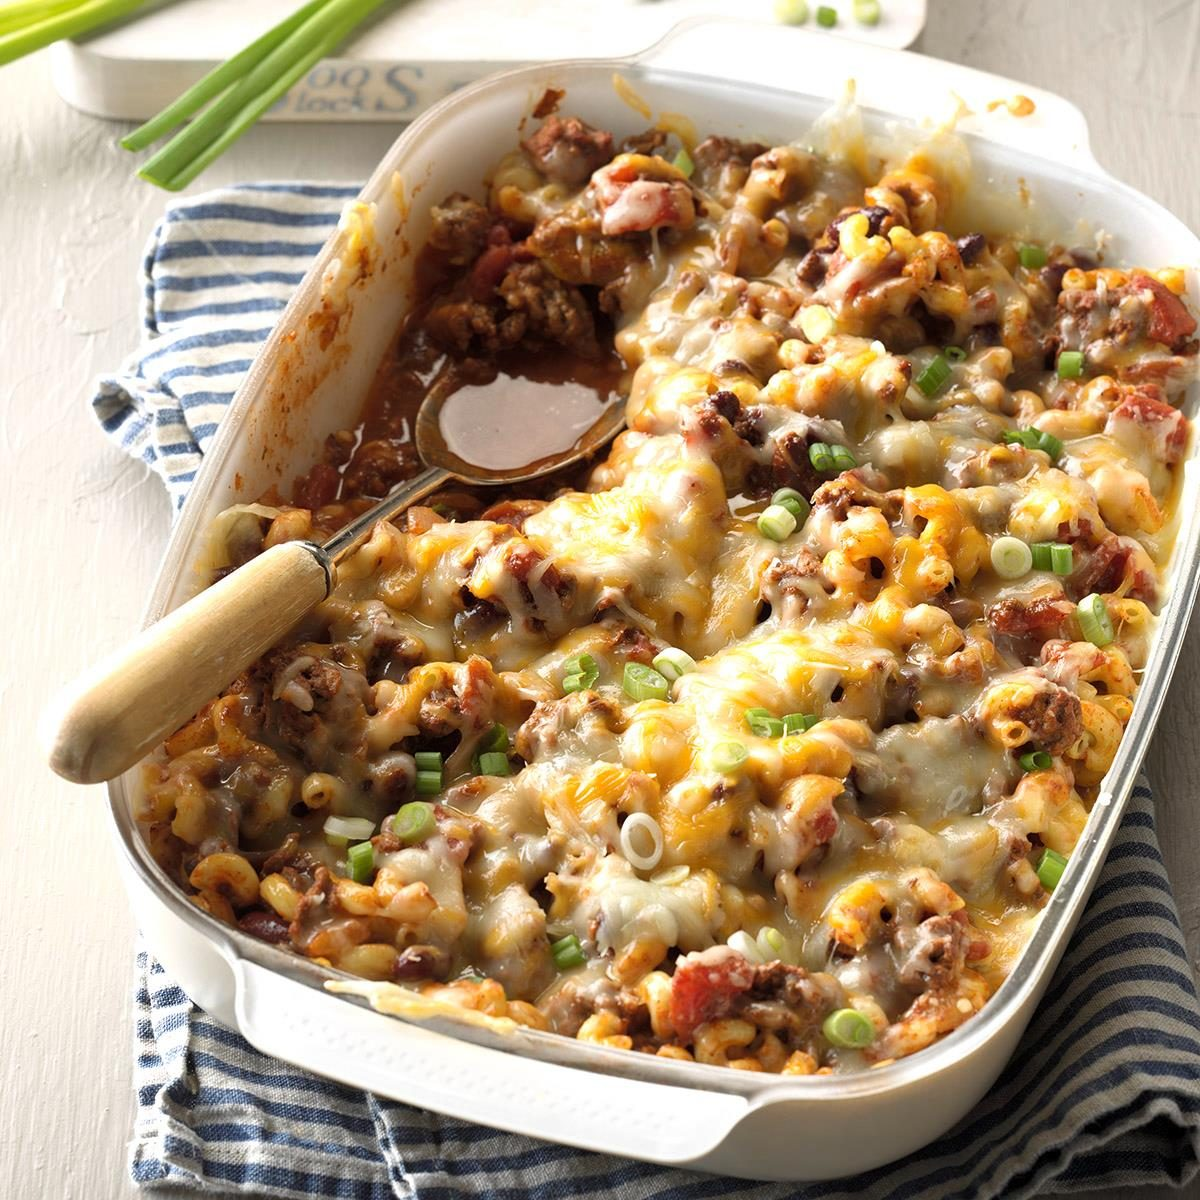 47 Healthy Casseroles That Are Incredibly Delicious